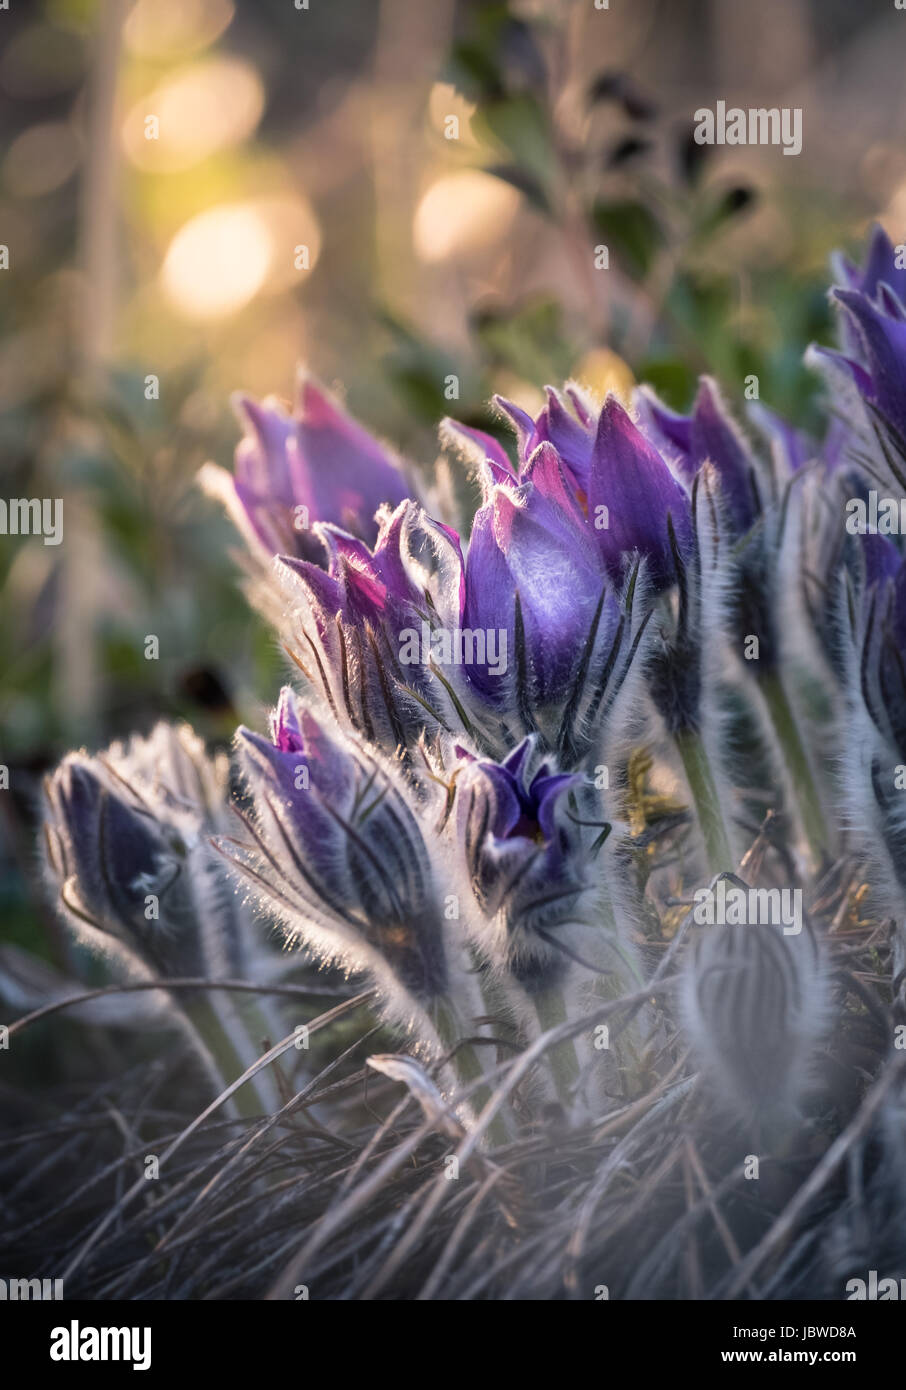 Very rare pulsatilla patens flower in the evening light. - Stock Image